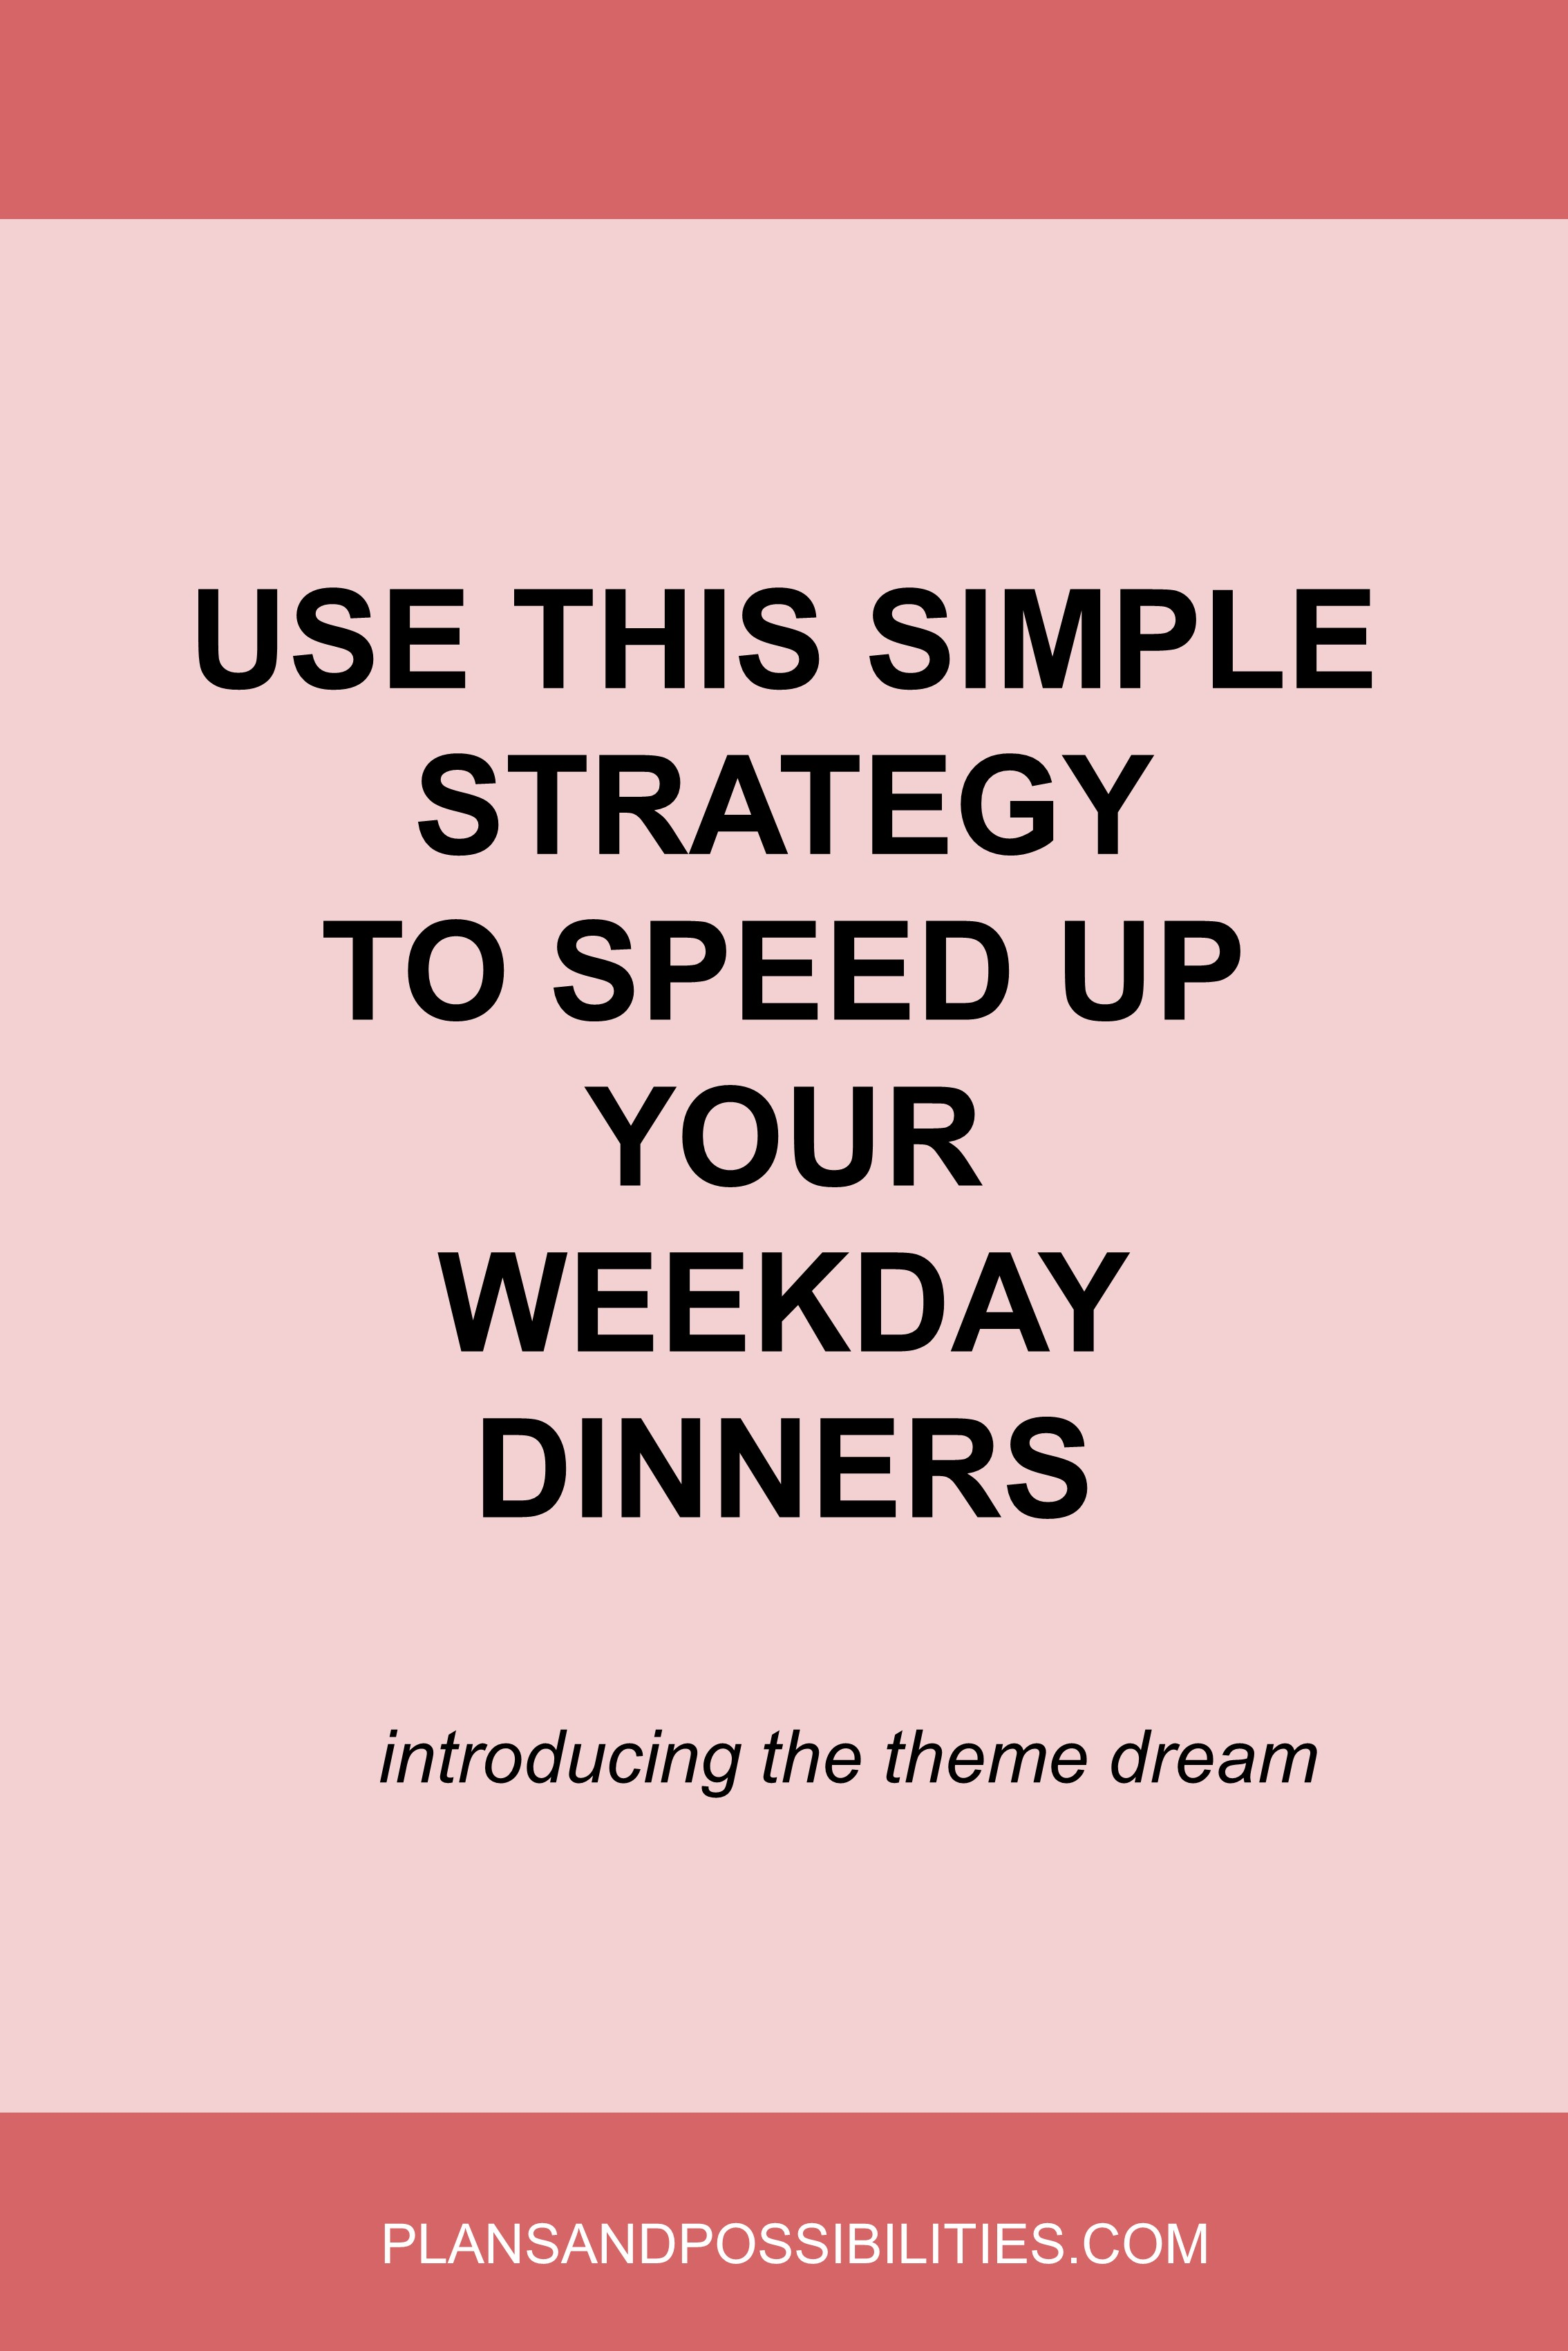 Use This Simple Strategy To Speed Up Your Weekday Dinners.jpg